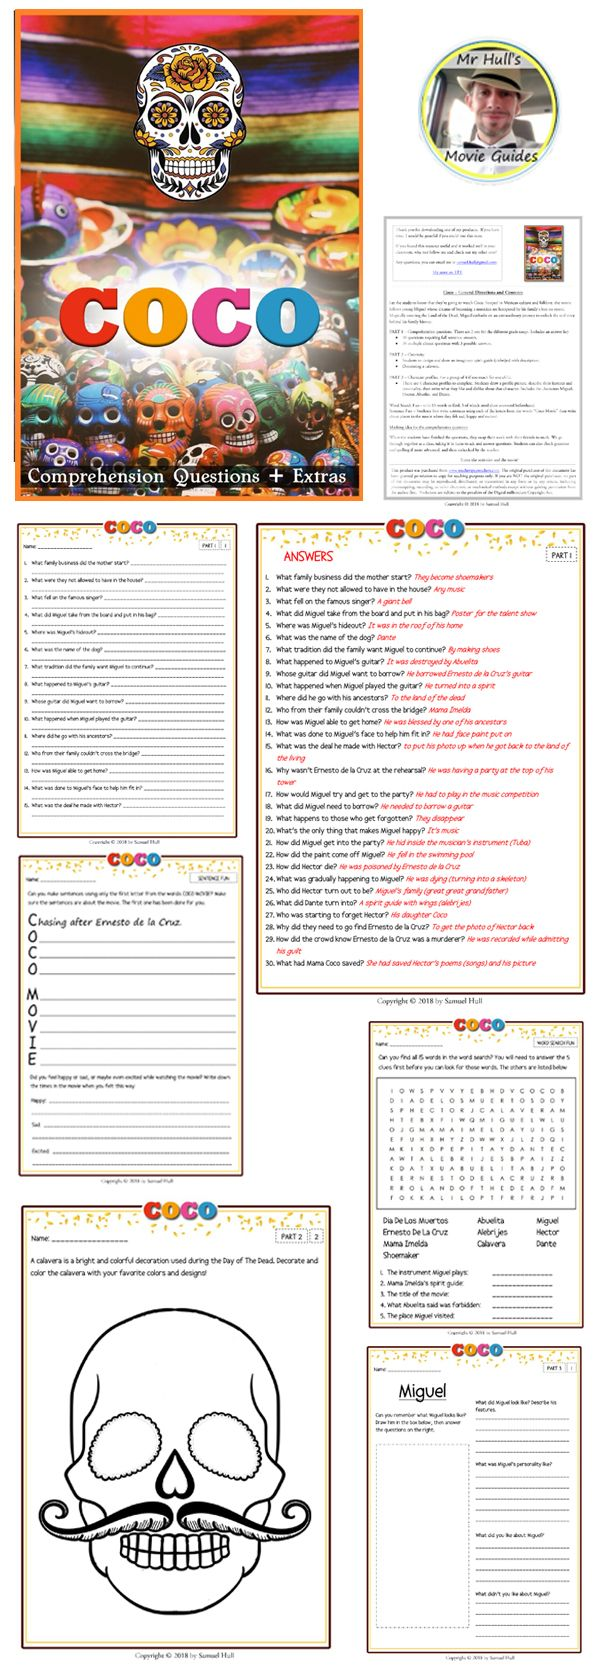 Coco Movie Guide Activities Answer Key Included Color Black